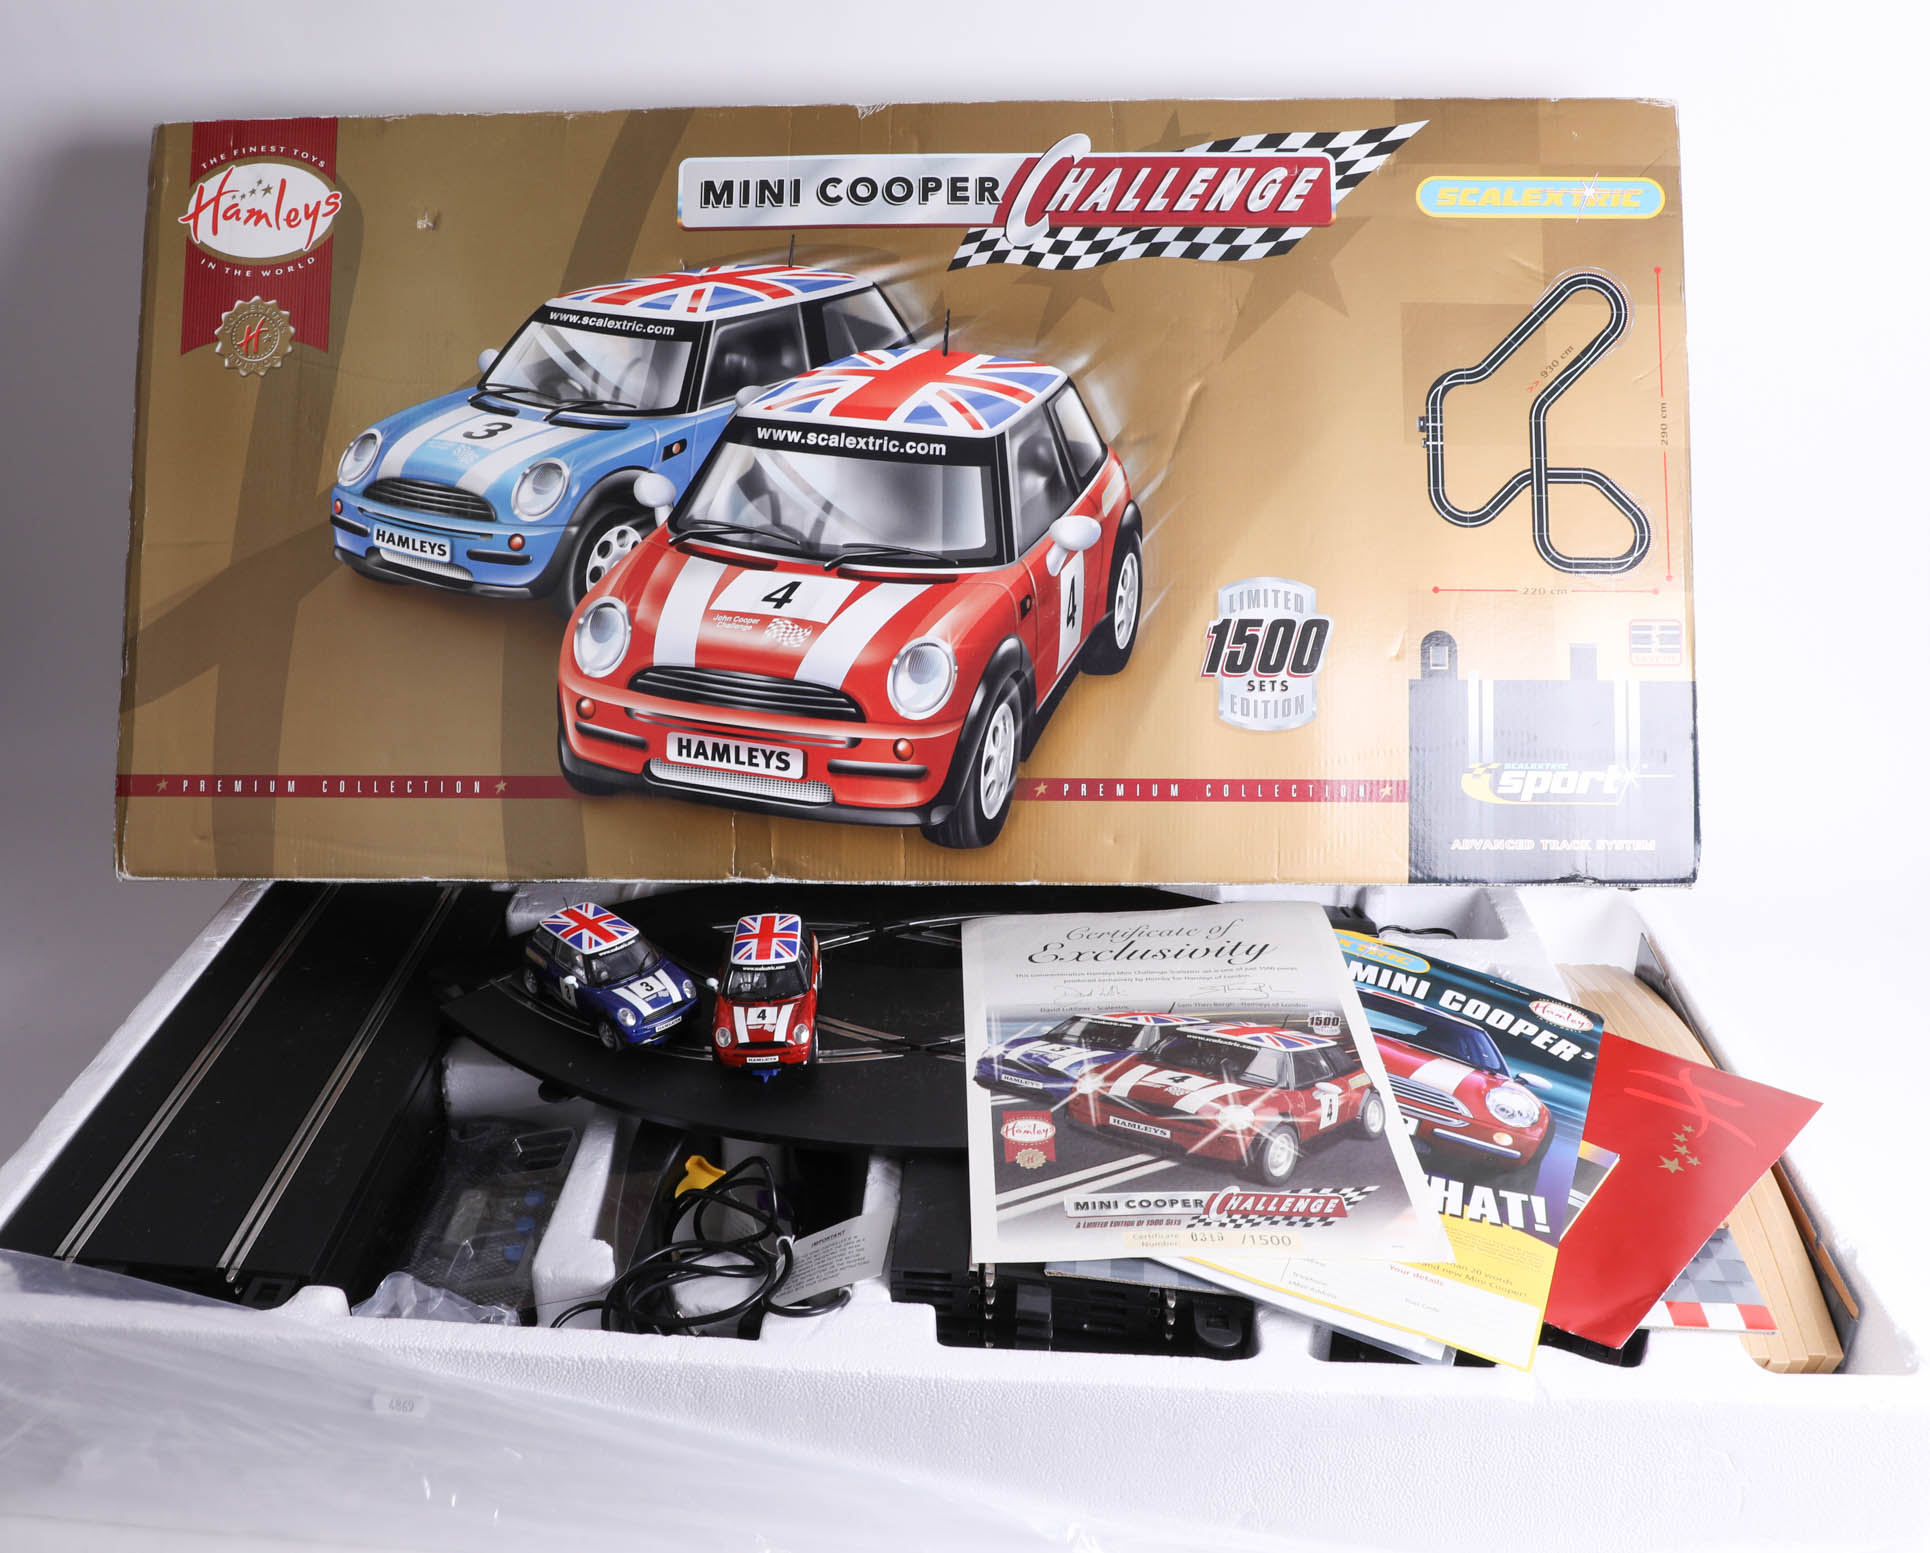 A Hamley's 'Mini Cooper Challenge' Scalextric set, limited edition 319/1500 with certificate,